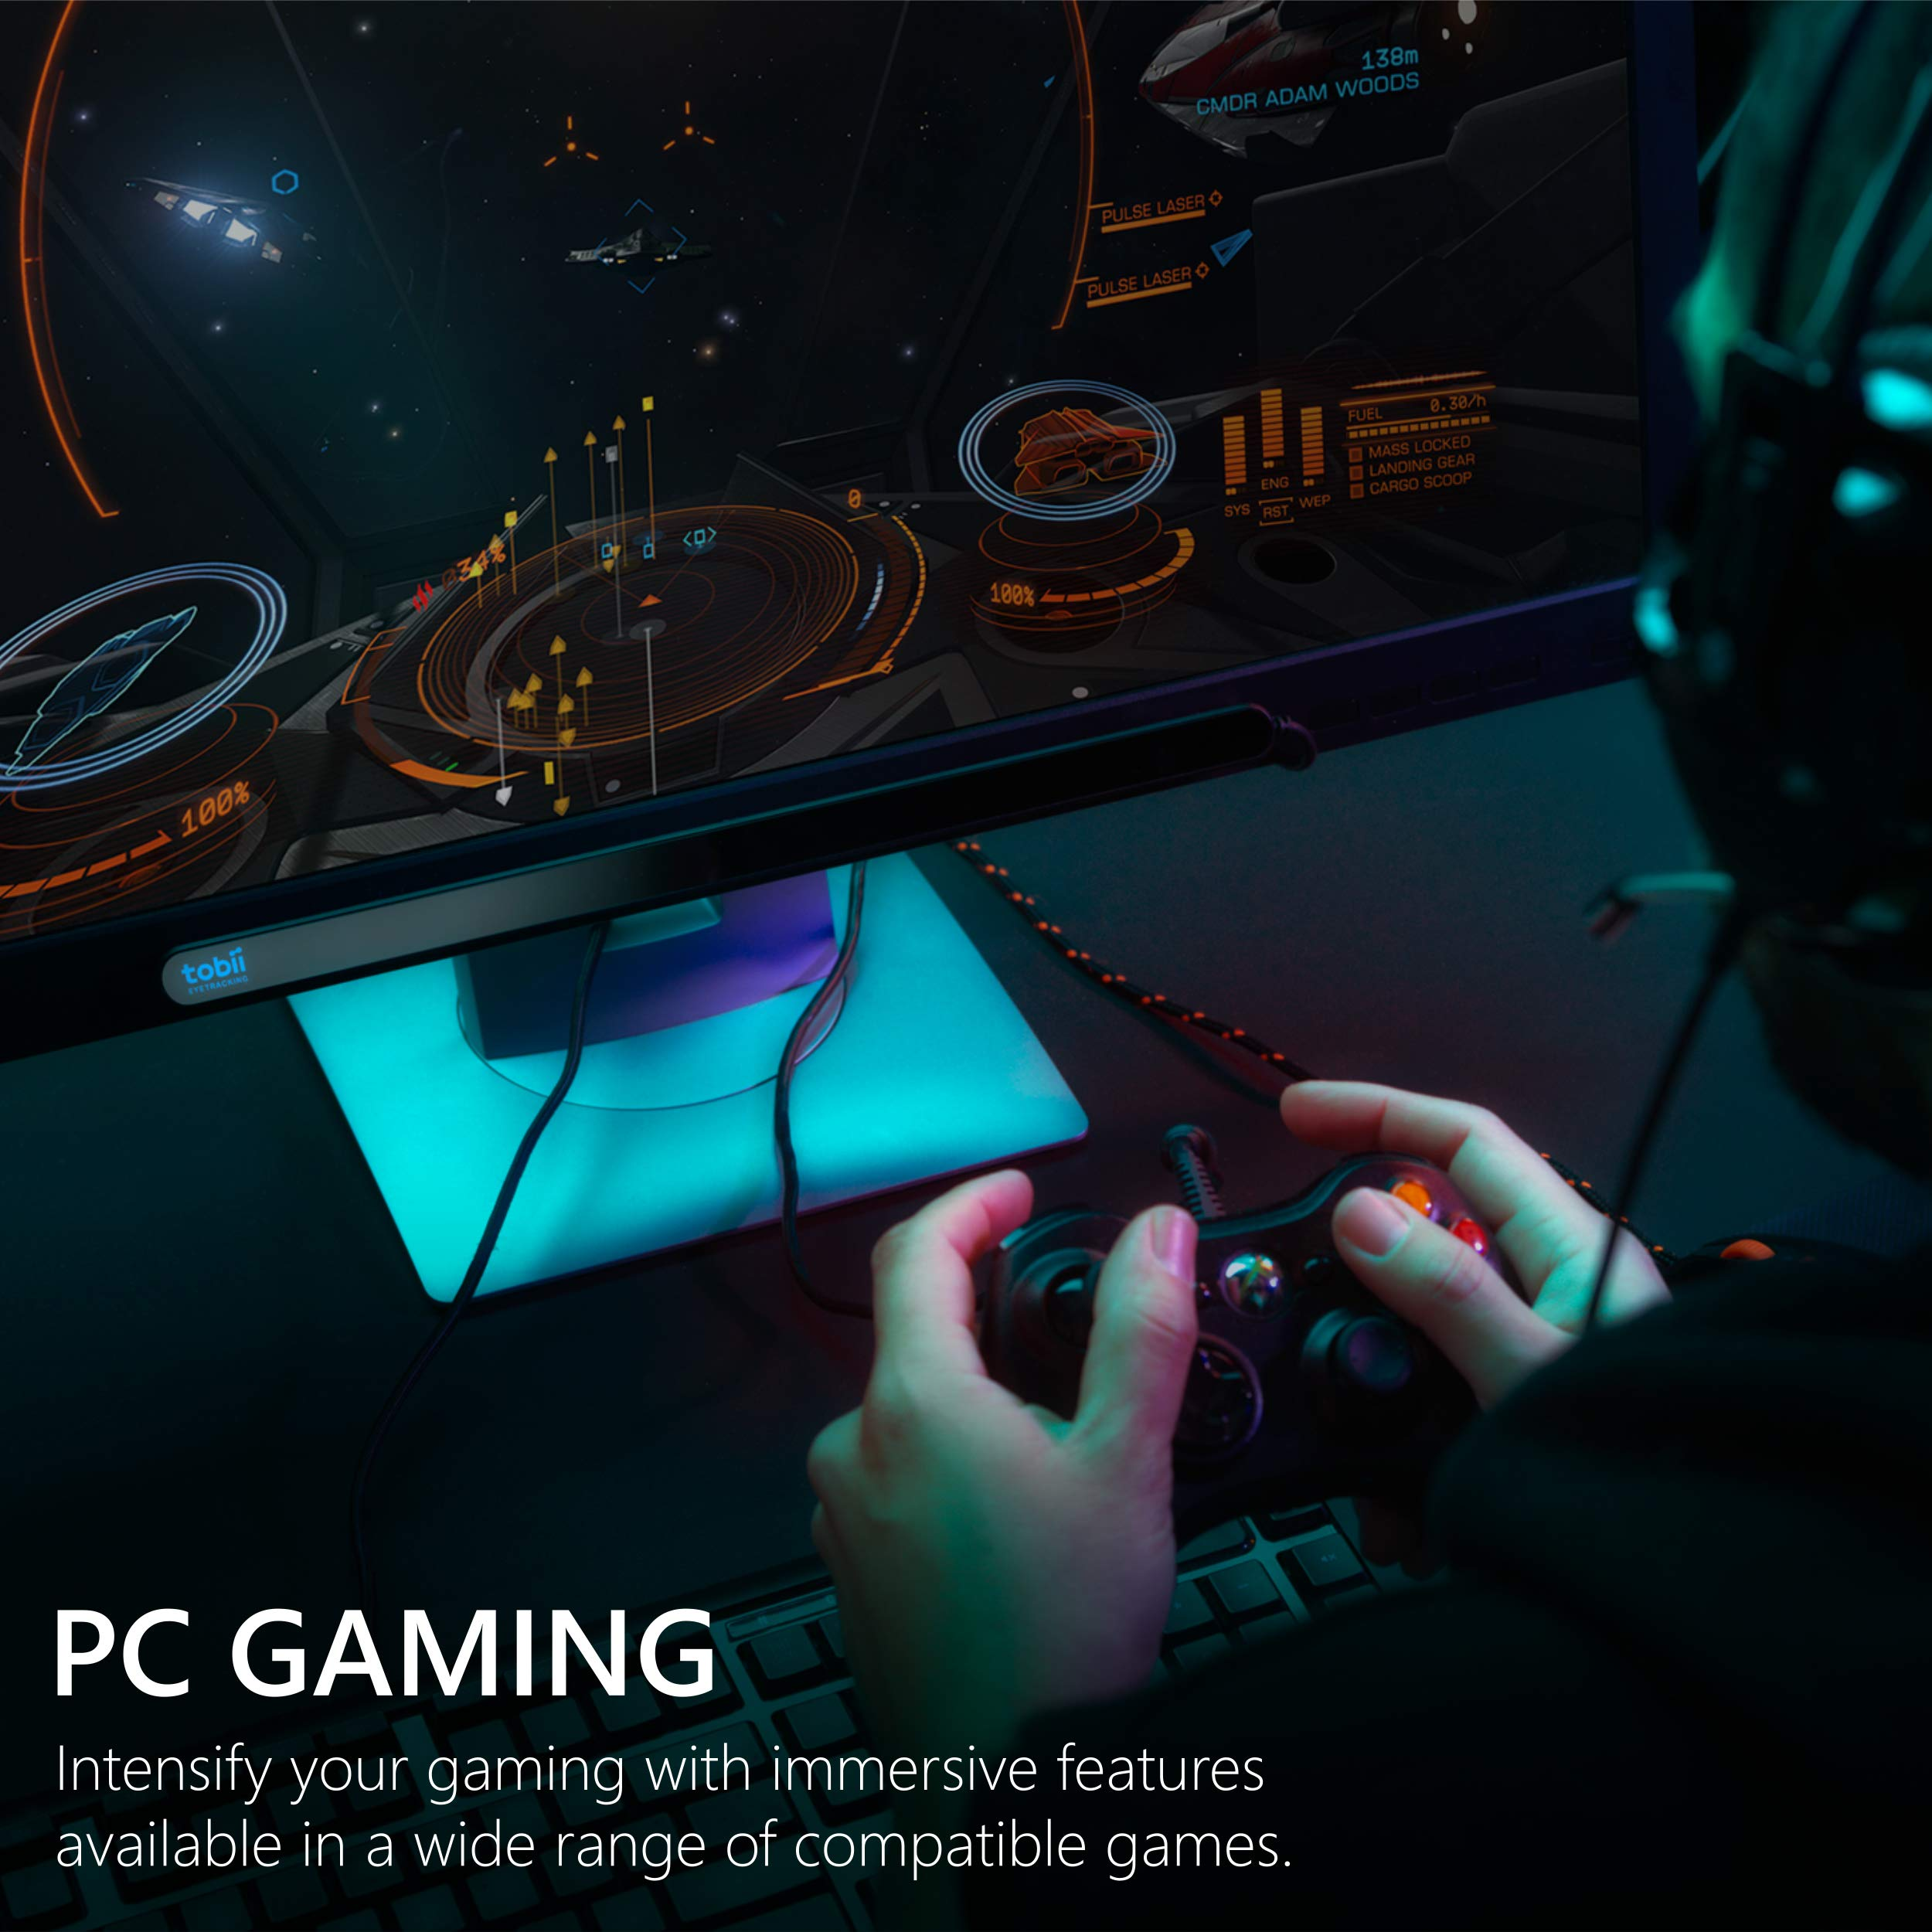 Tobii Eye Tracker 4C - Gaming and Streaming Tool for PC